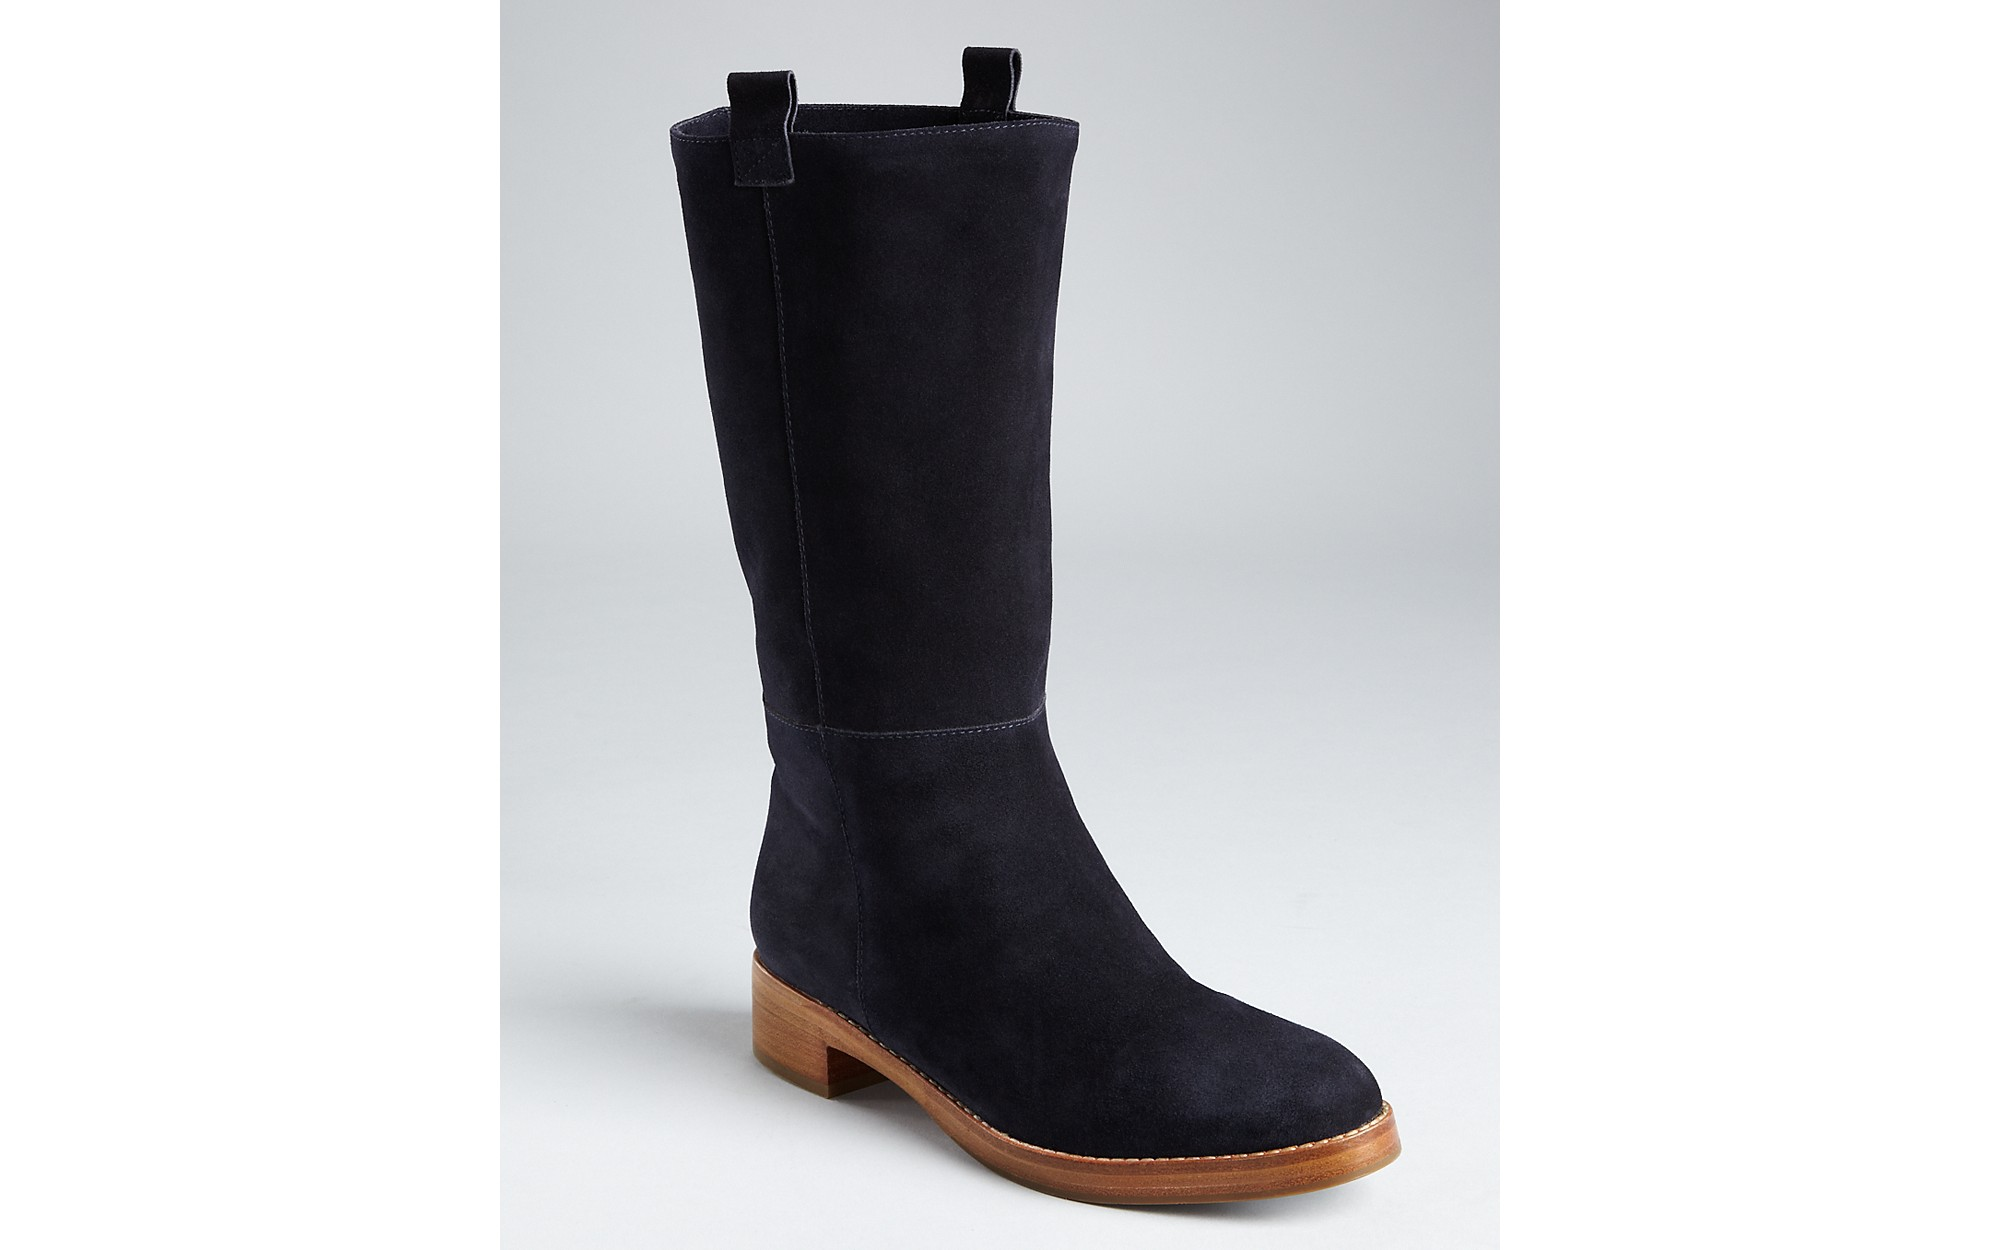 via spiga flat boots giana in black midnight suede lyst